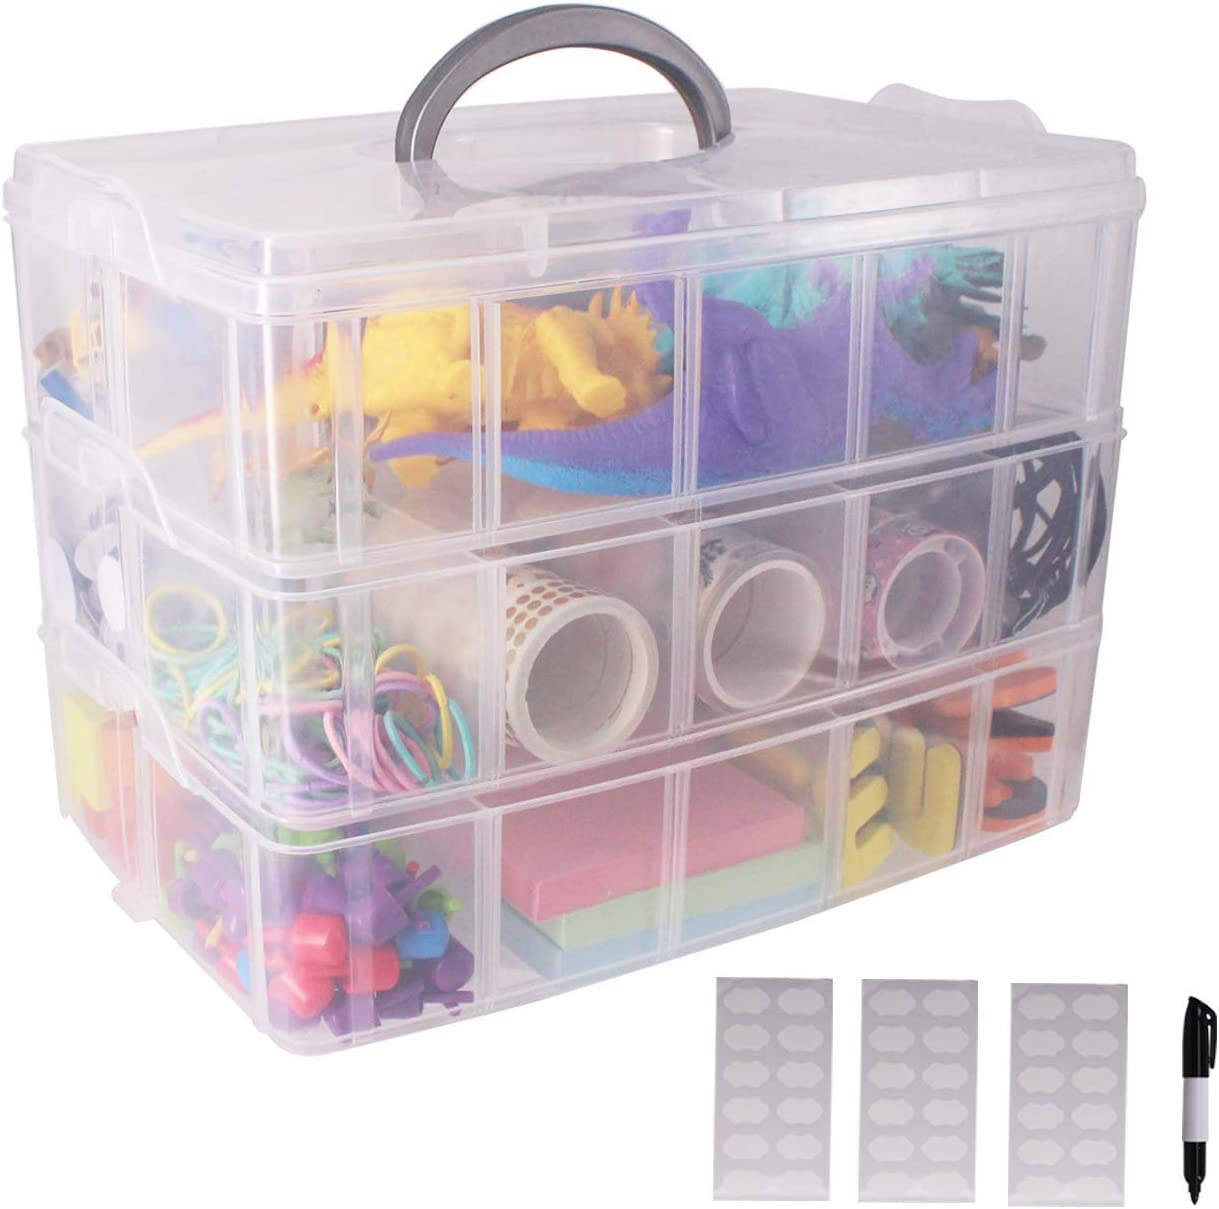 SUITUS 3-Tier Plastic Organizer Box with Adjustable Dividers, Clear Stackable Craft Storage Container Box with 30 Compartments, Ideal for Art DIY Craft, Beads, Fishing Tackles (9.8X6.7X7.1 Inch)